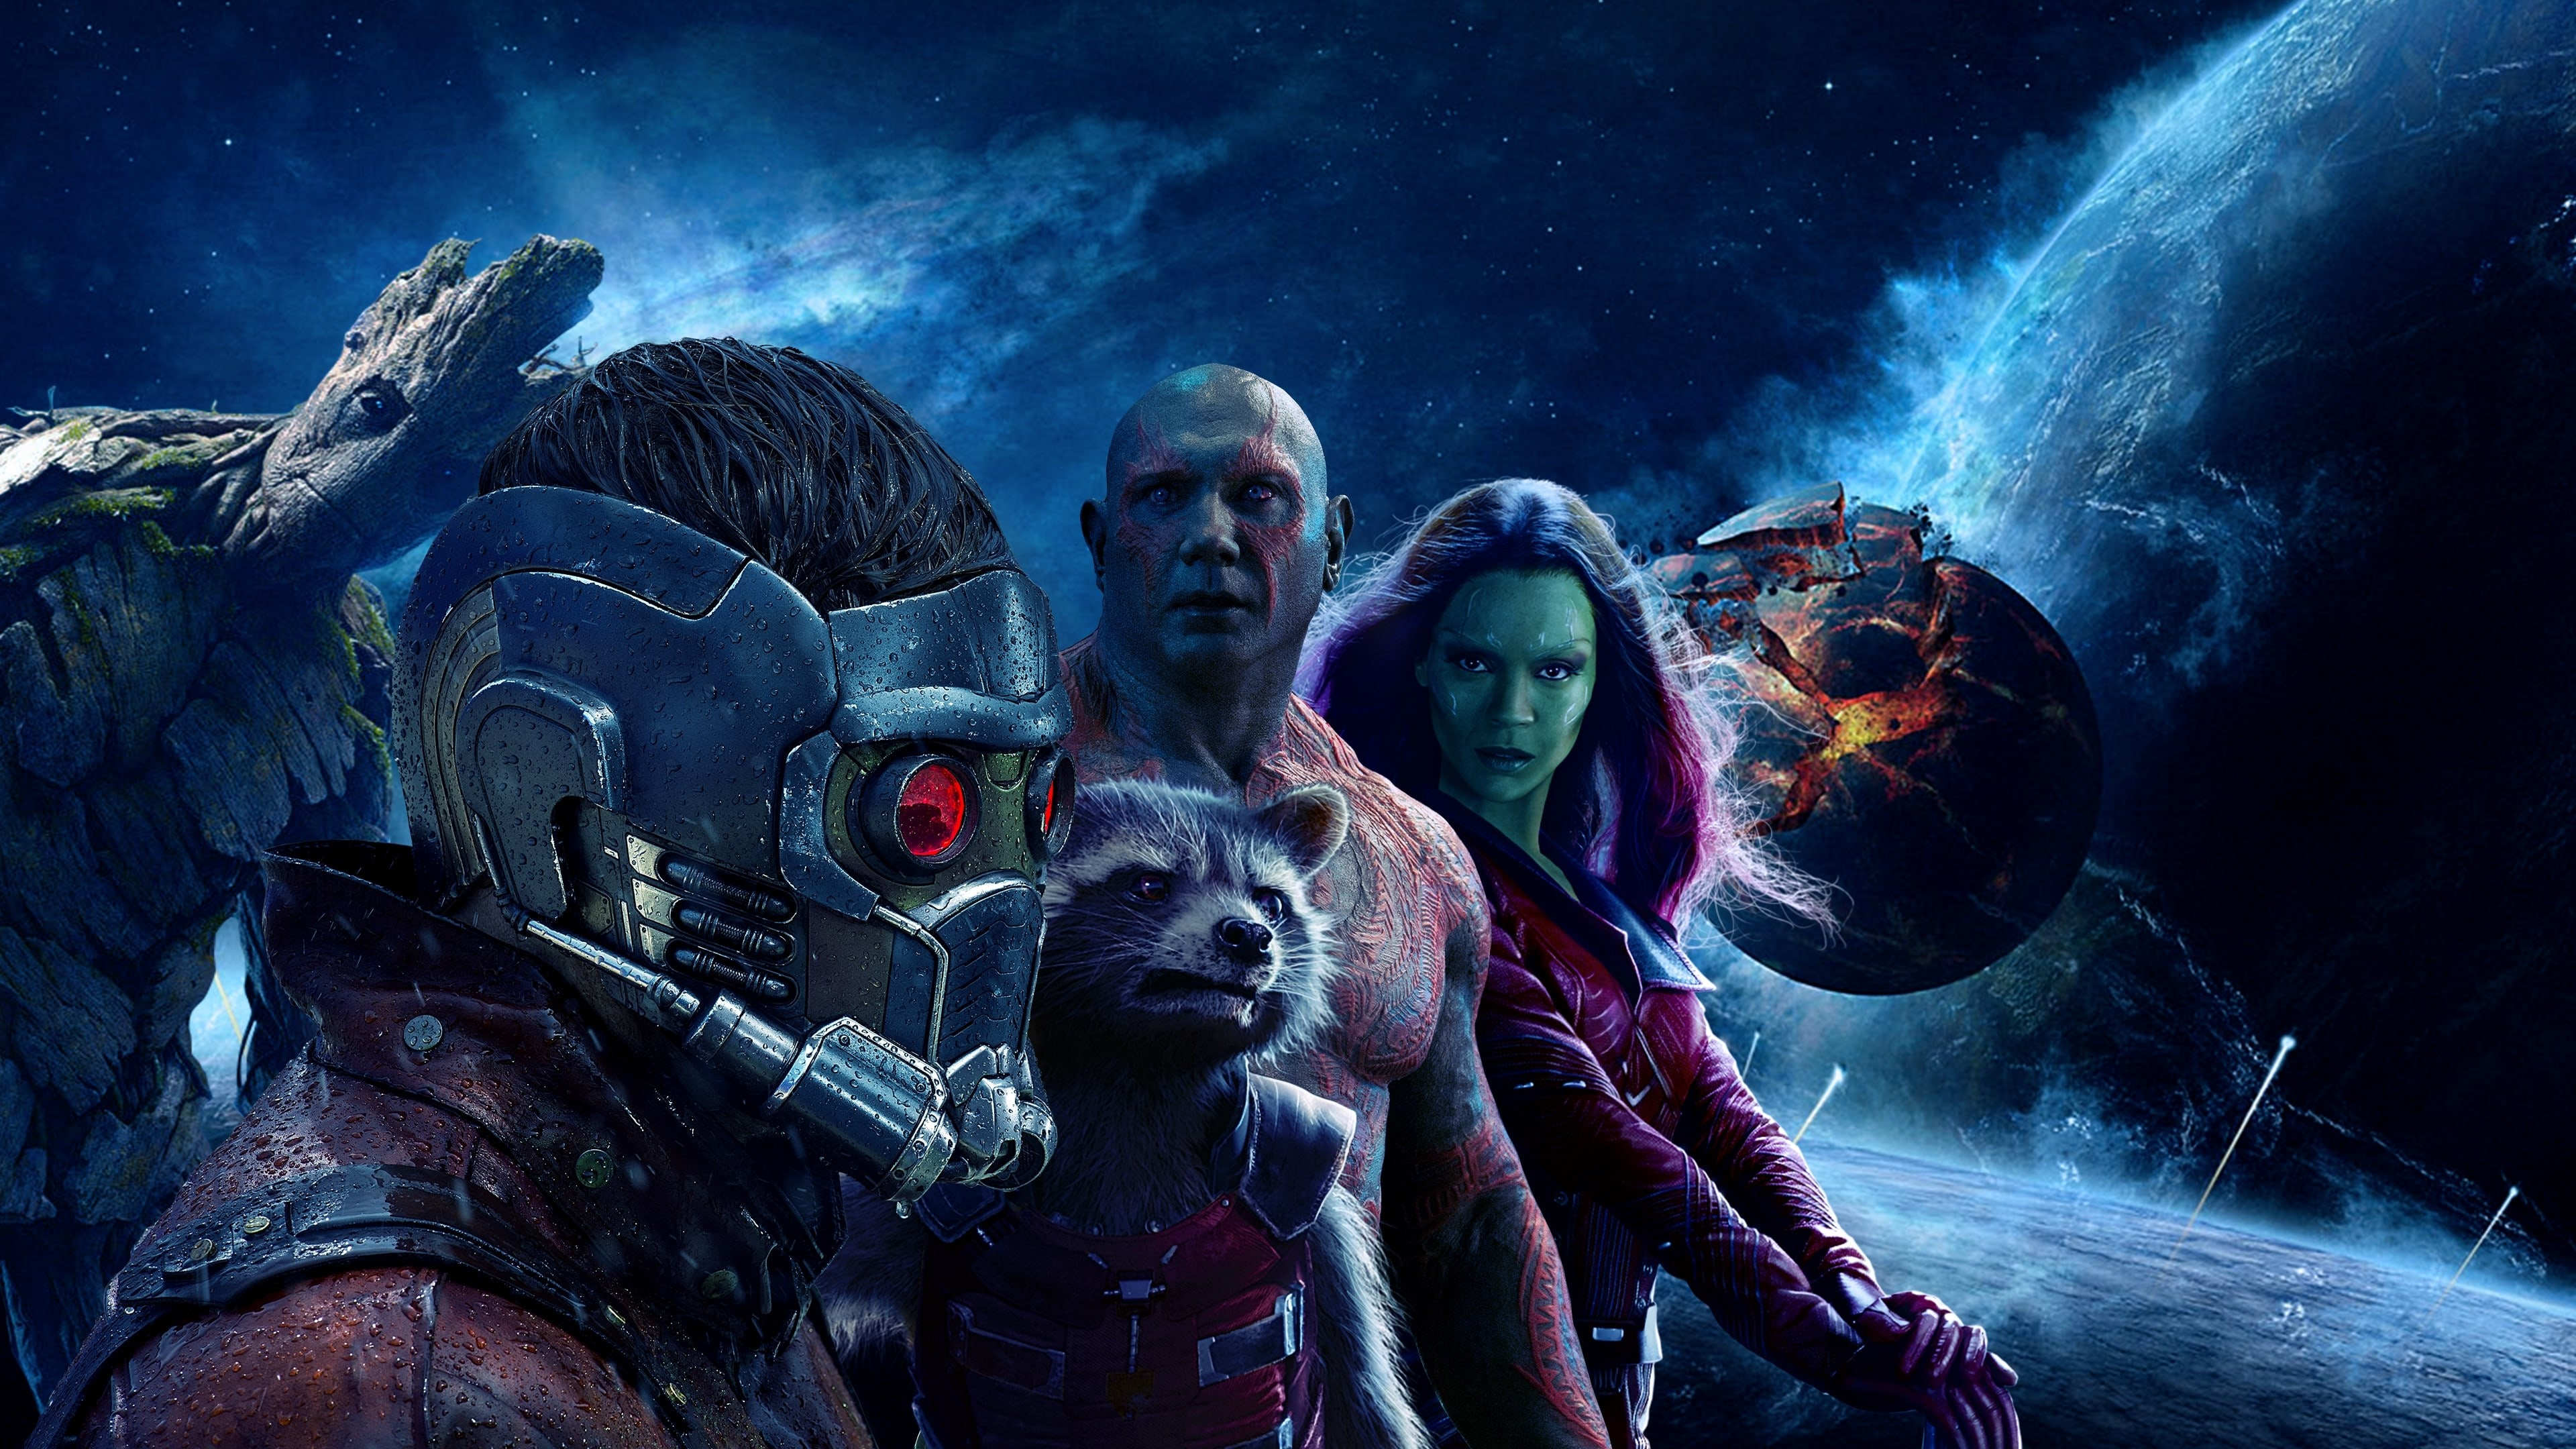 Guardians of the Galaxy Vol. 2 Wallpapers hd